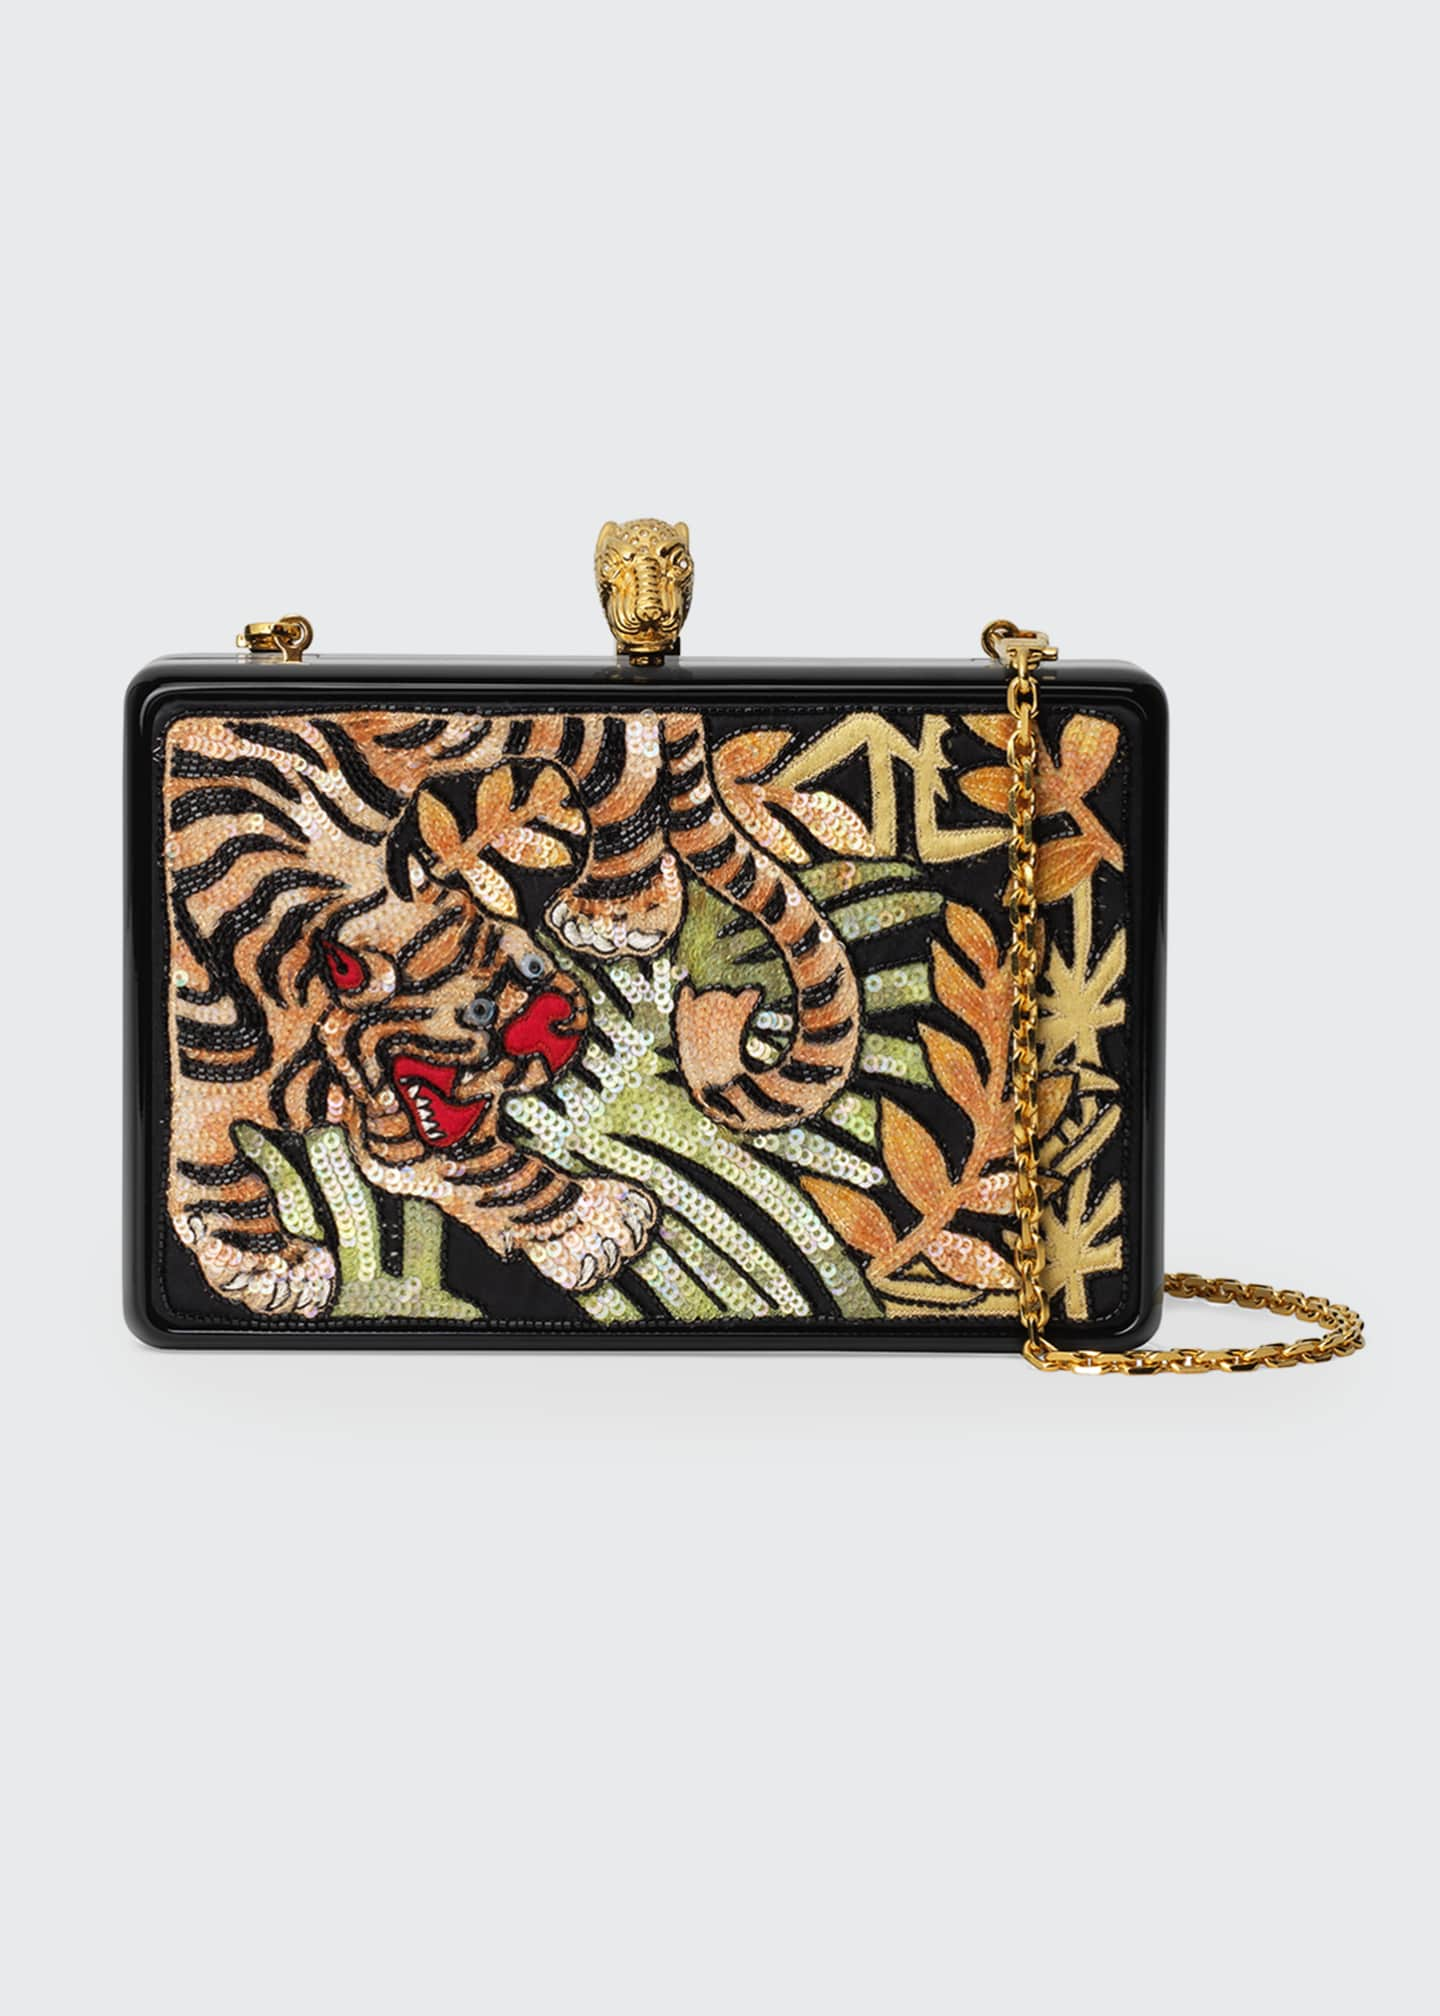 Gucci Broadway Sequin Tiger Box Clutch Bag